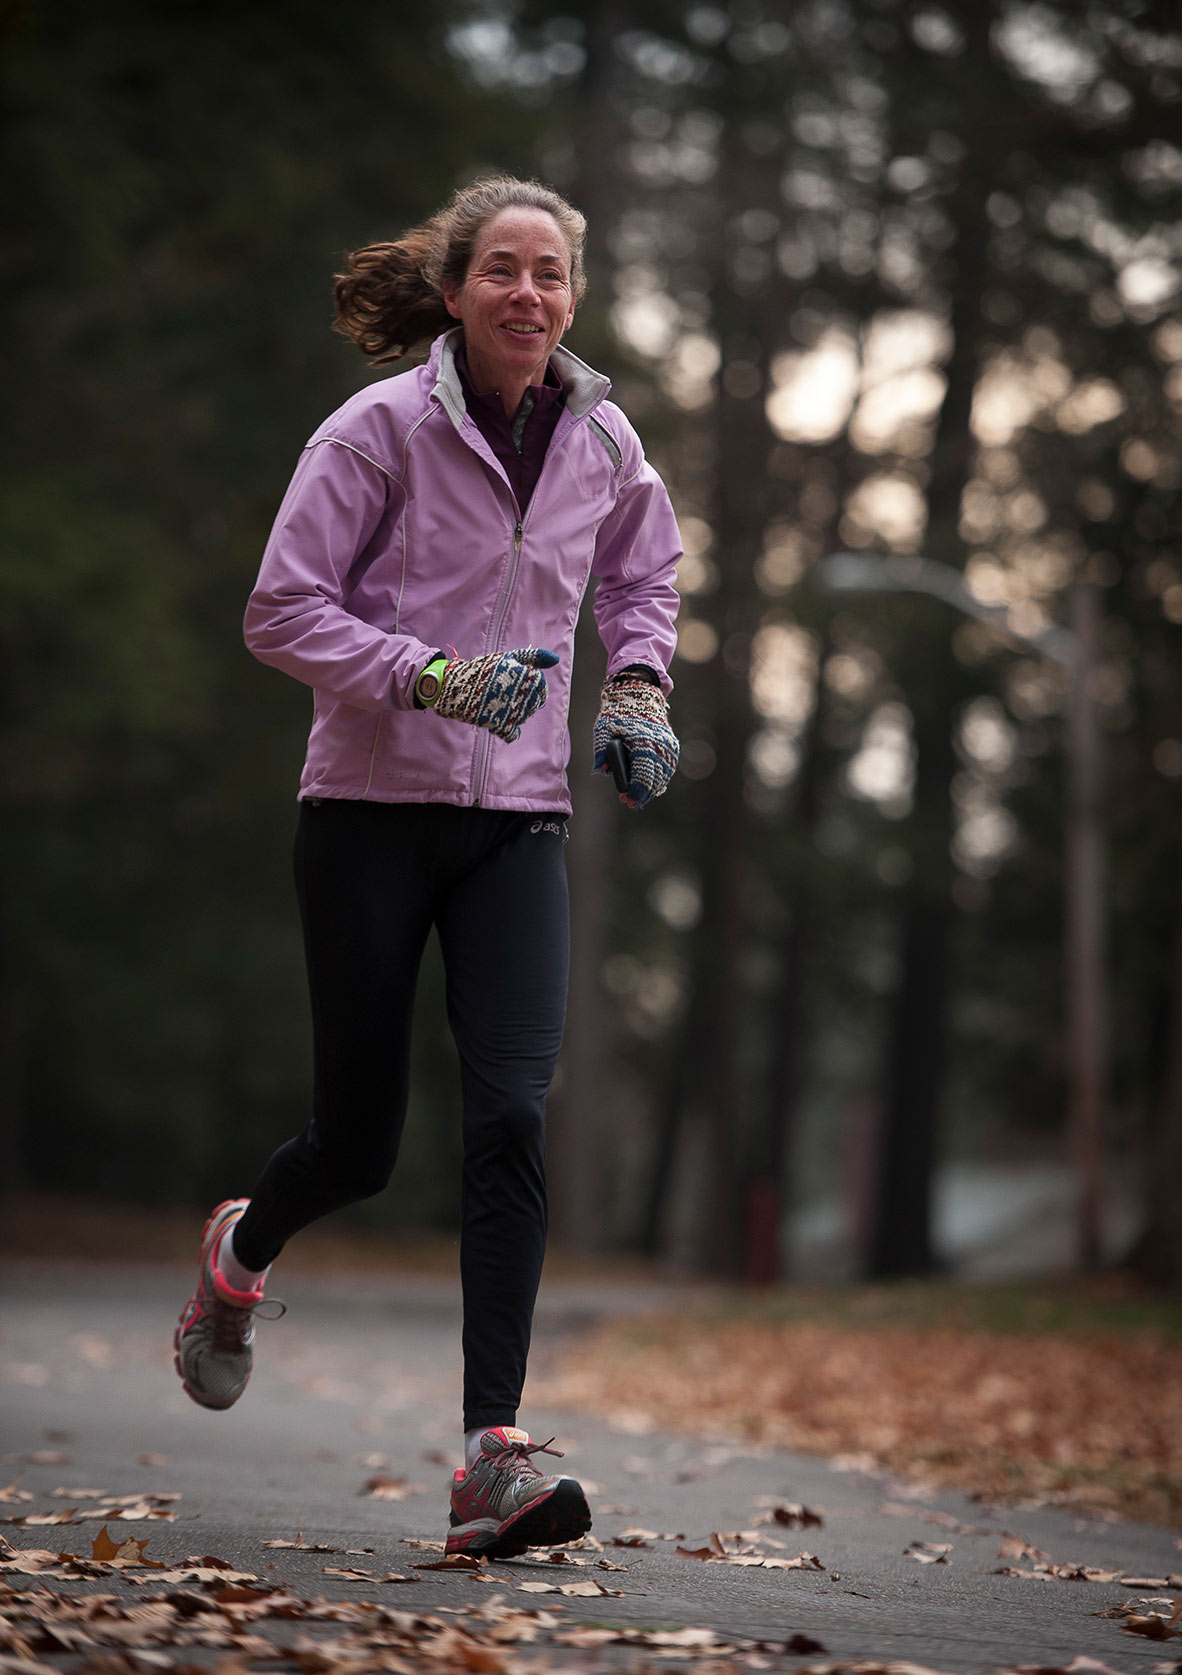 Woman jogging as part of cardiopulmonary rehabilitation program at Cooley Dickinson Hospital, Northampton, MA 01060.